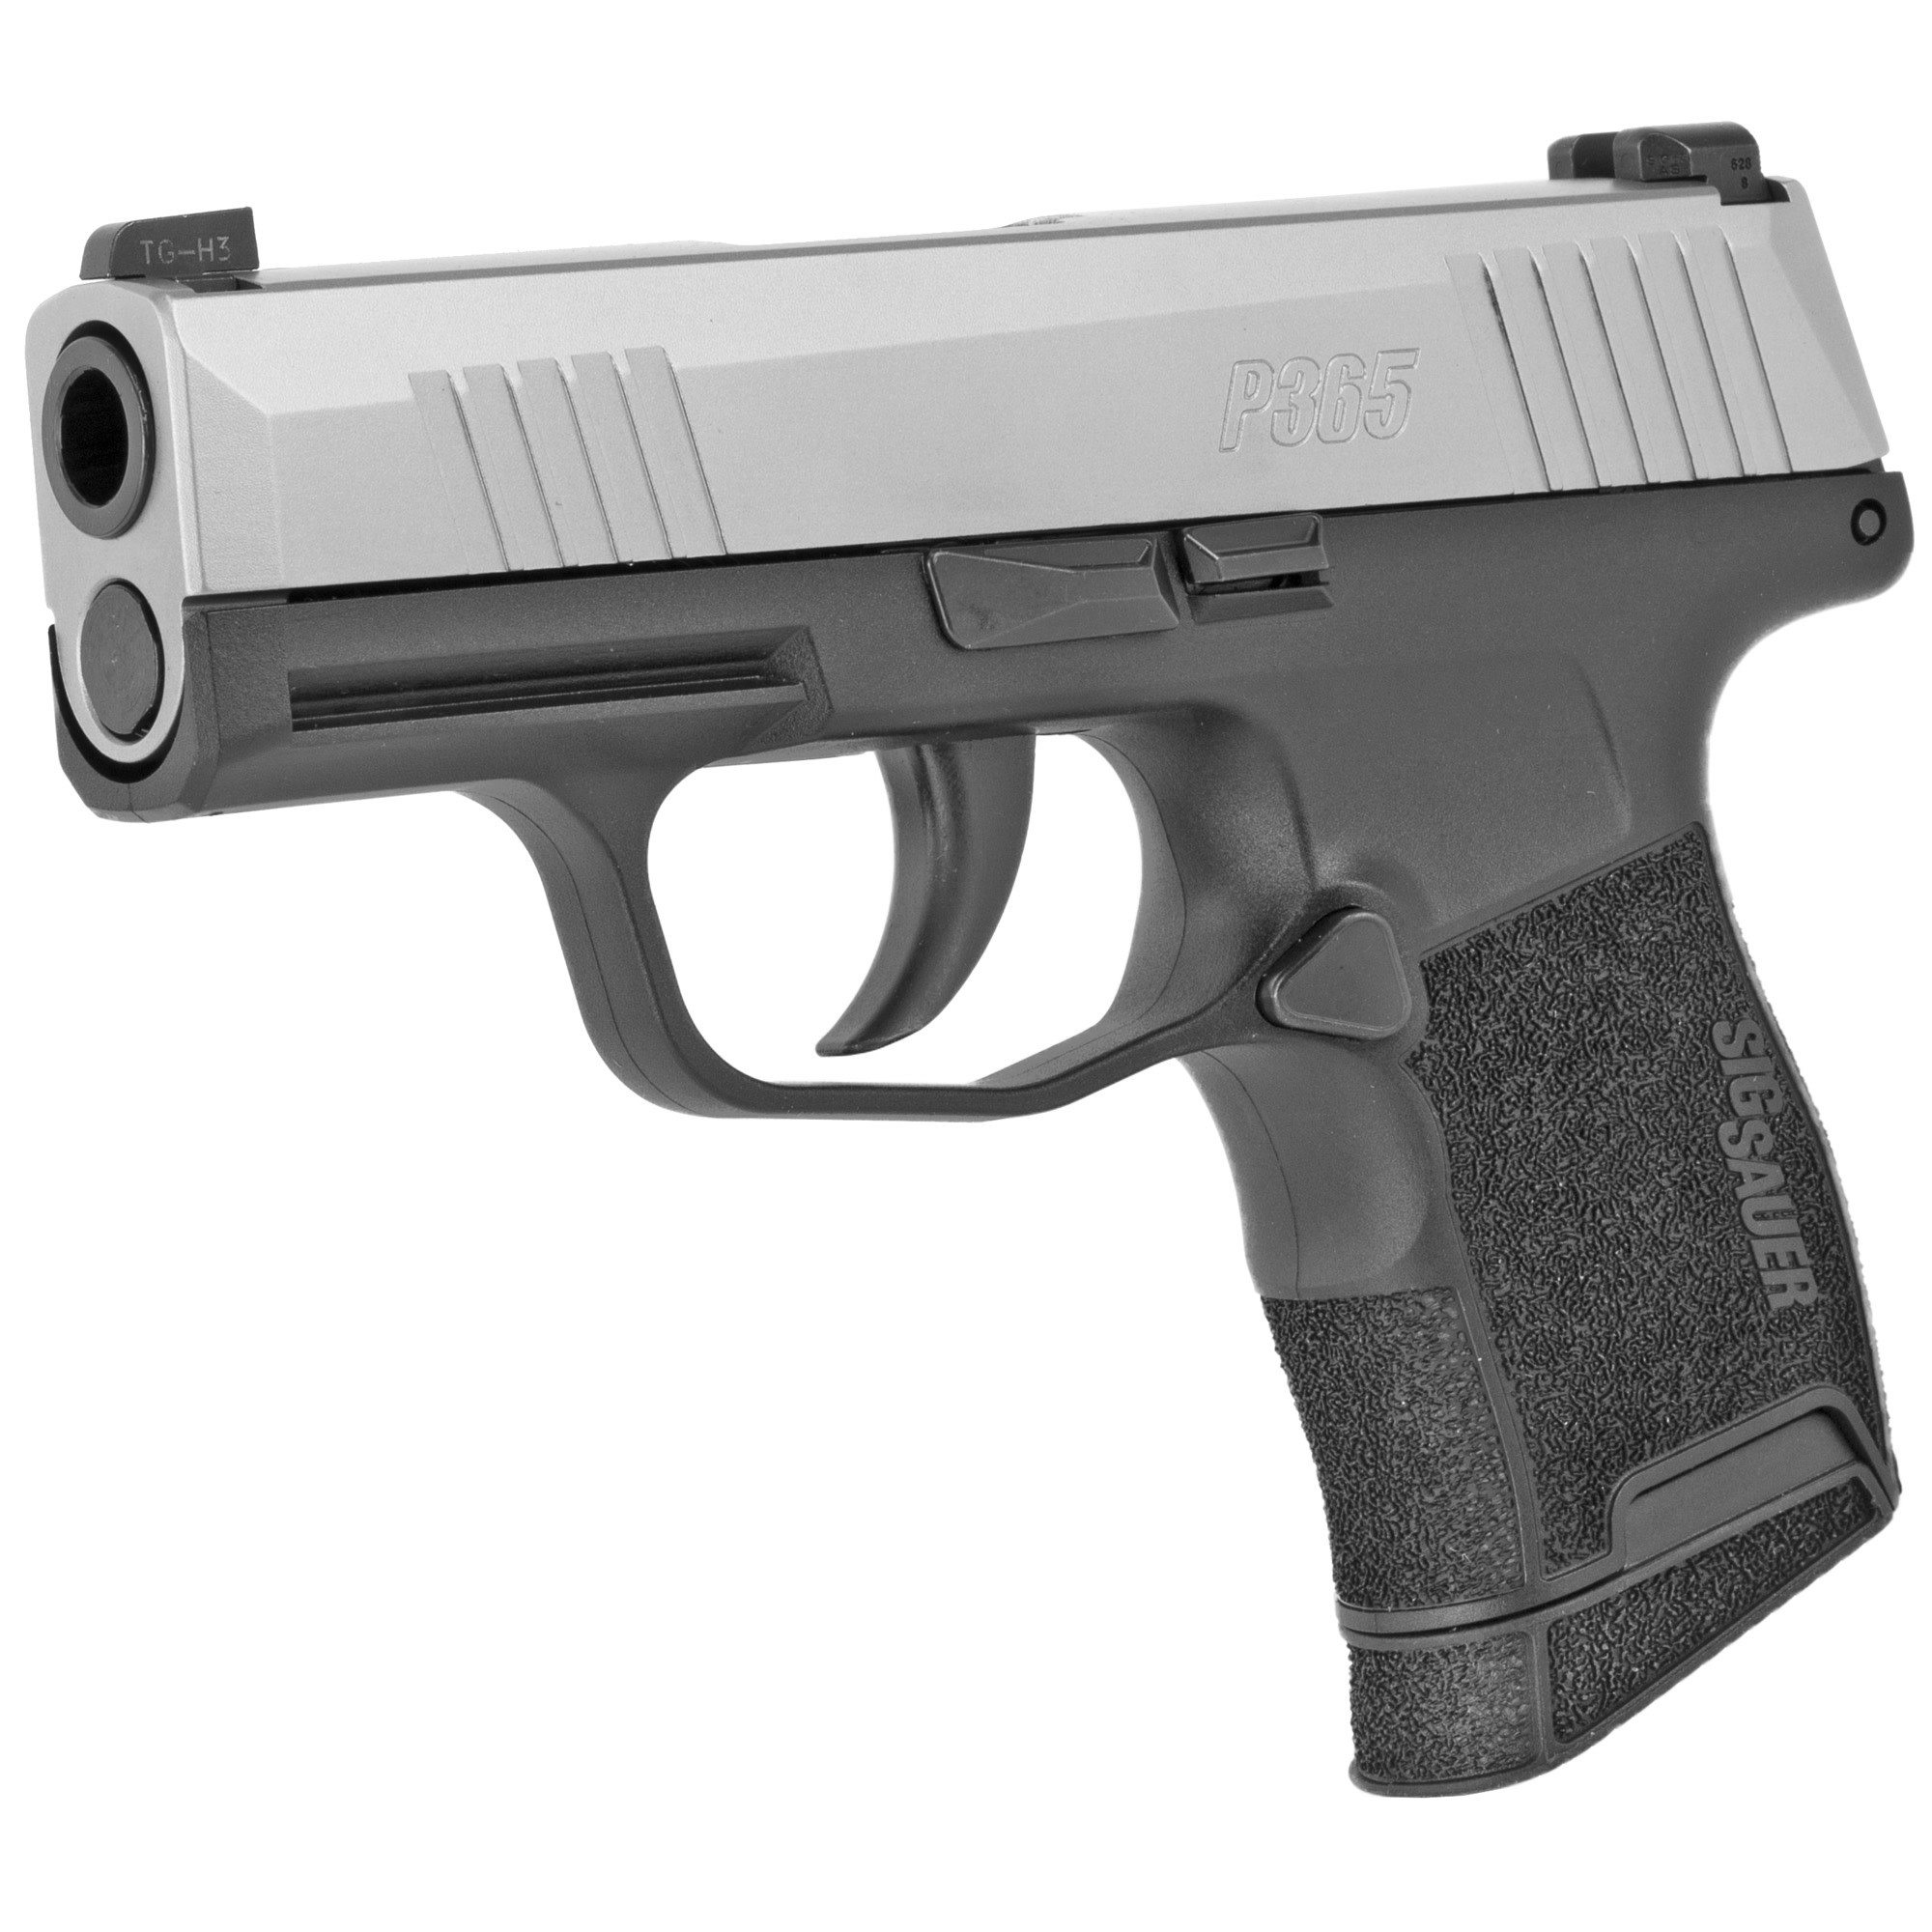 Sig Sauer P365, 9mm, Stainless slide, Night Sights, 10rd